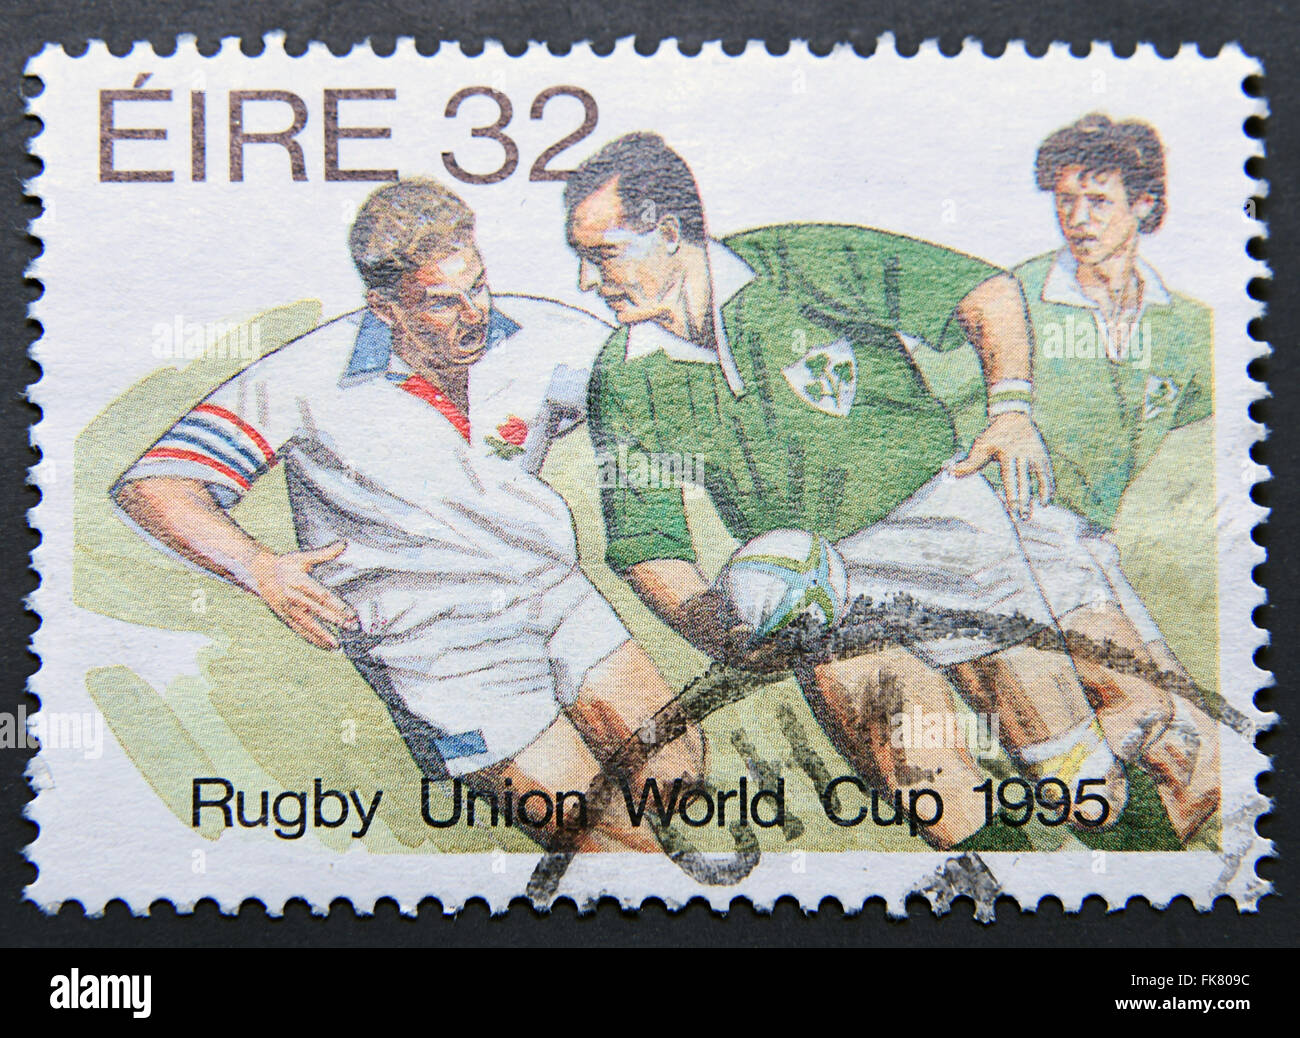 IRELAND - CIRCA 1995: A postage stamp shows Rugby Union World Cup 1995 - Stock Image